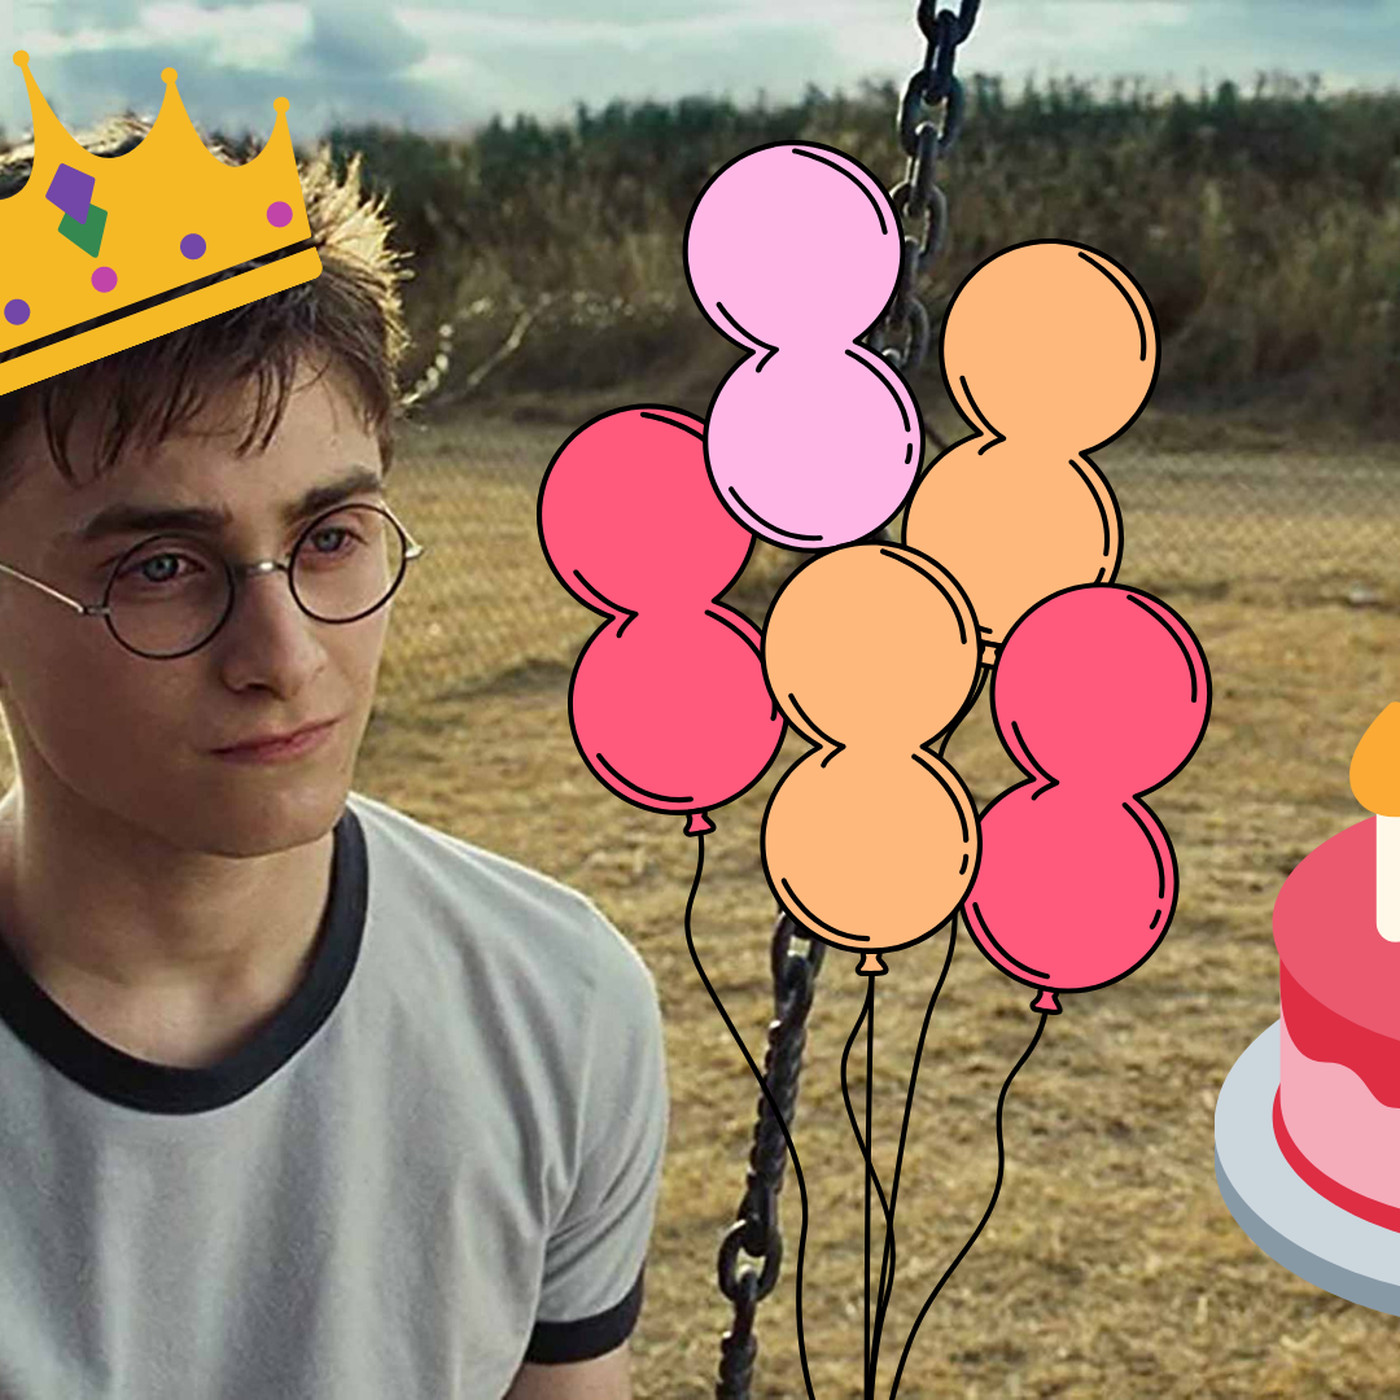 Judging If Harry Potter S Birthdays Were All Awful Based On The Gifts Polygon